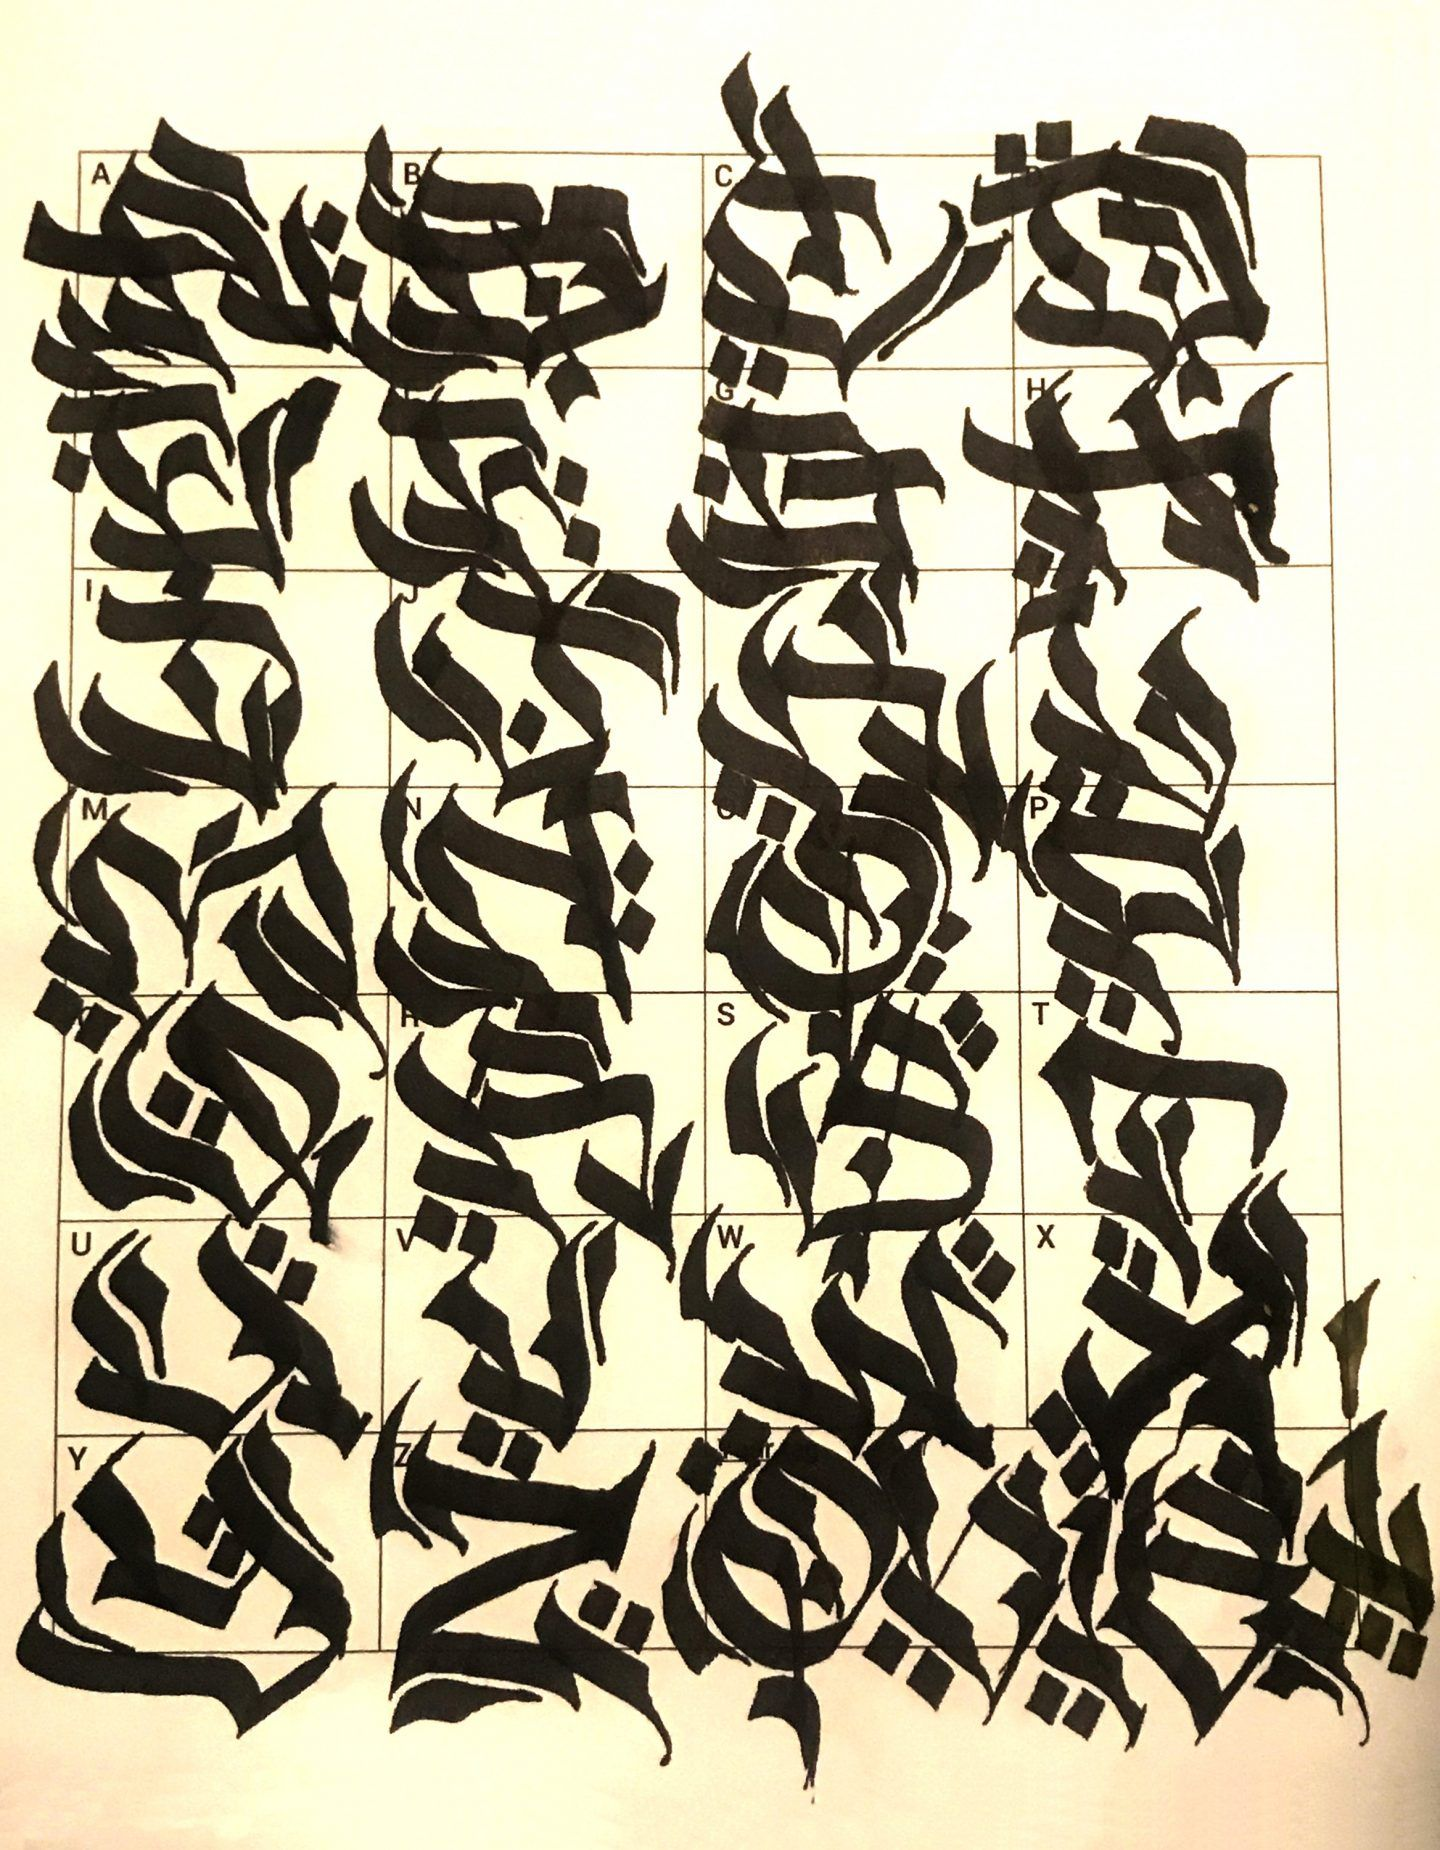 Graffiti letters 61 graffiti artists share their styles bombing science